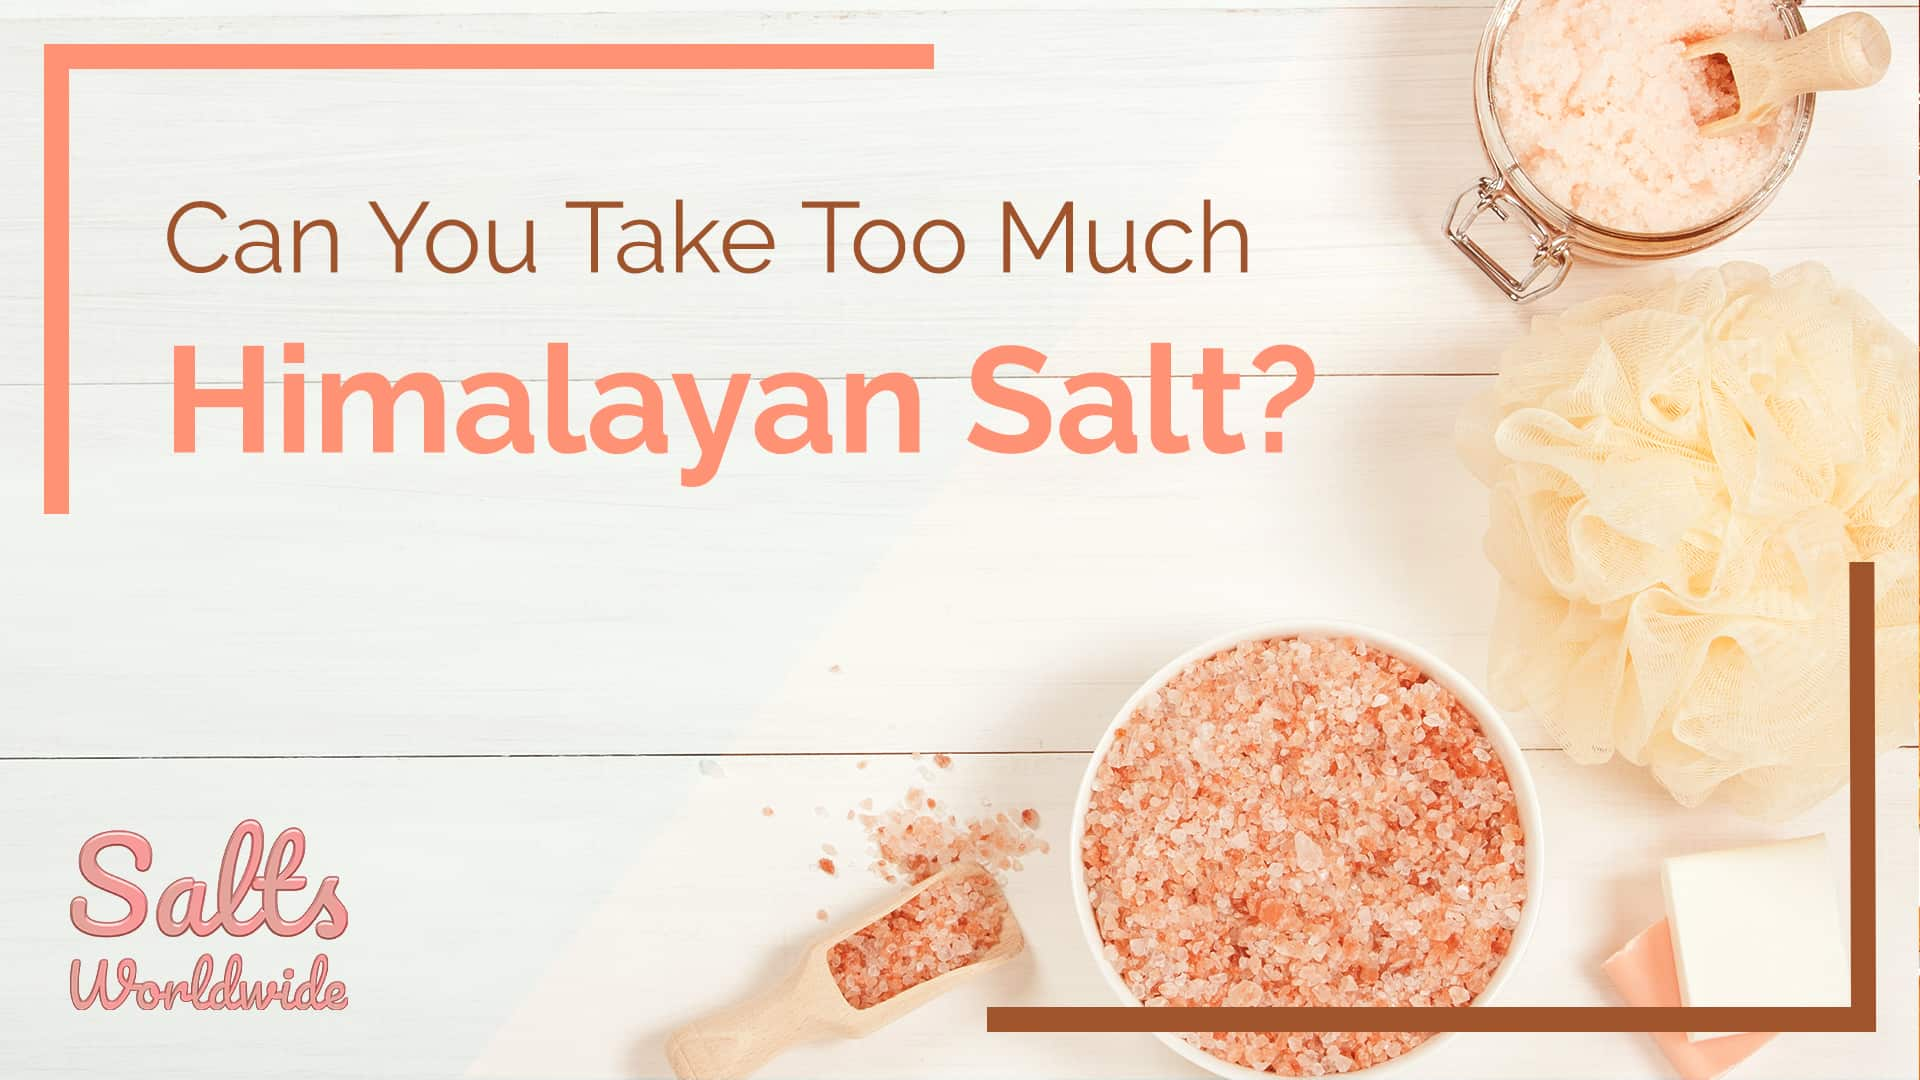 Can You Take Too Much Himalayan Salt - featured image